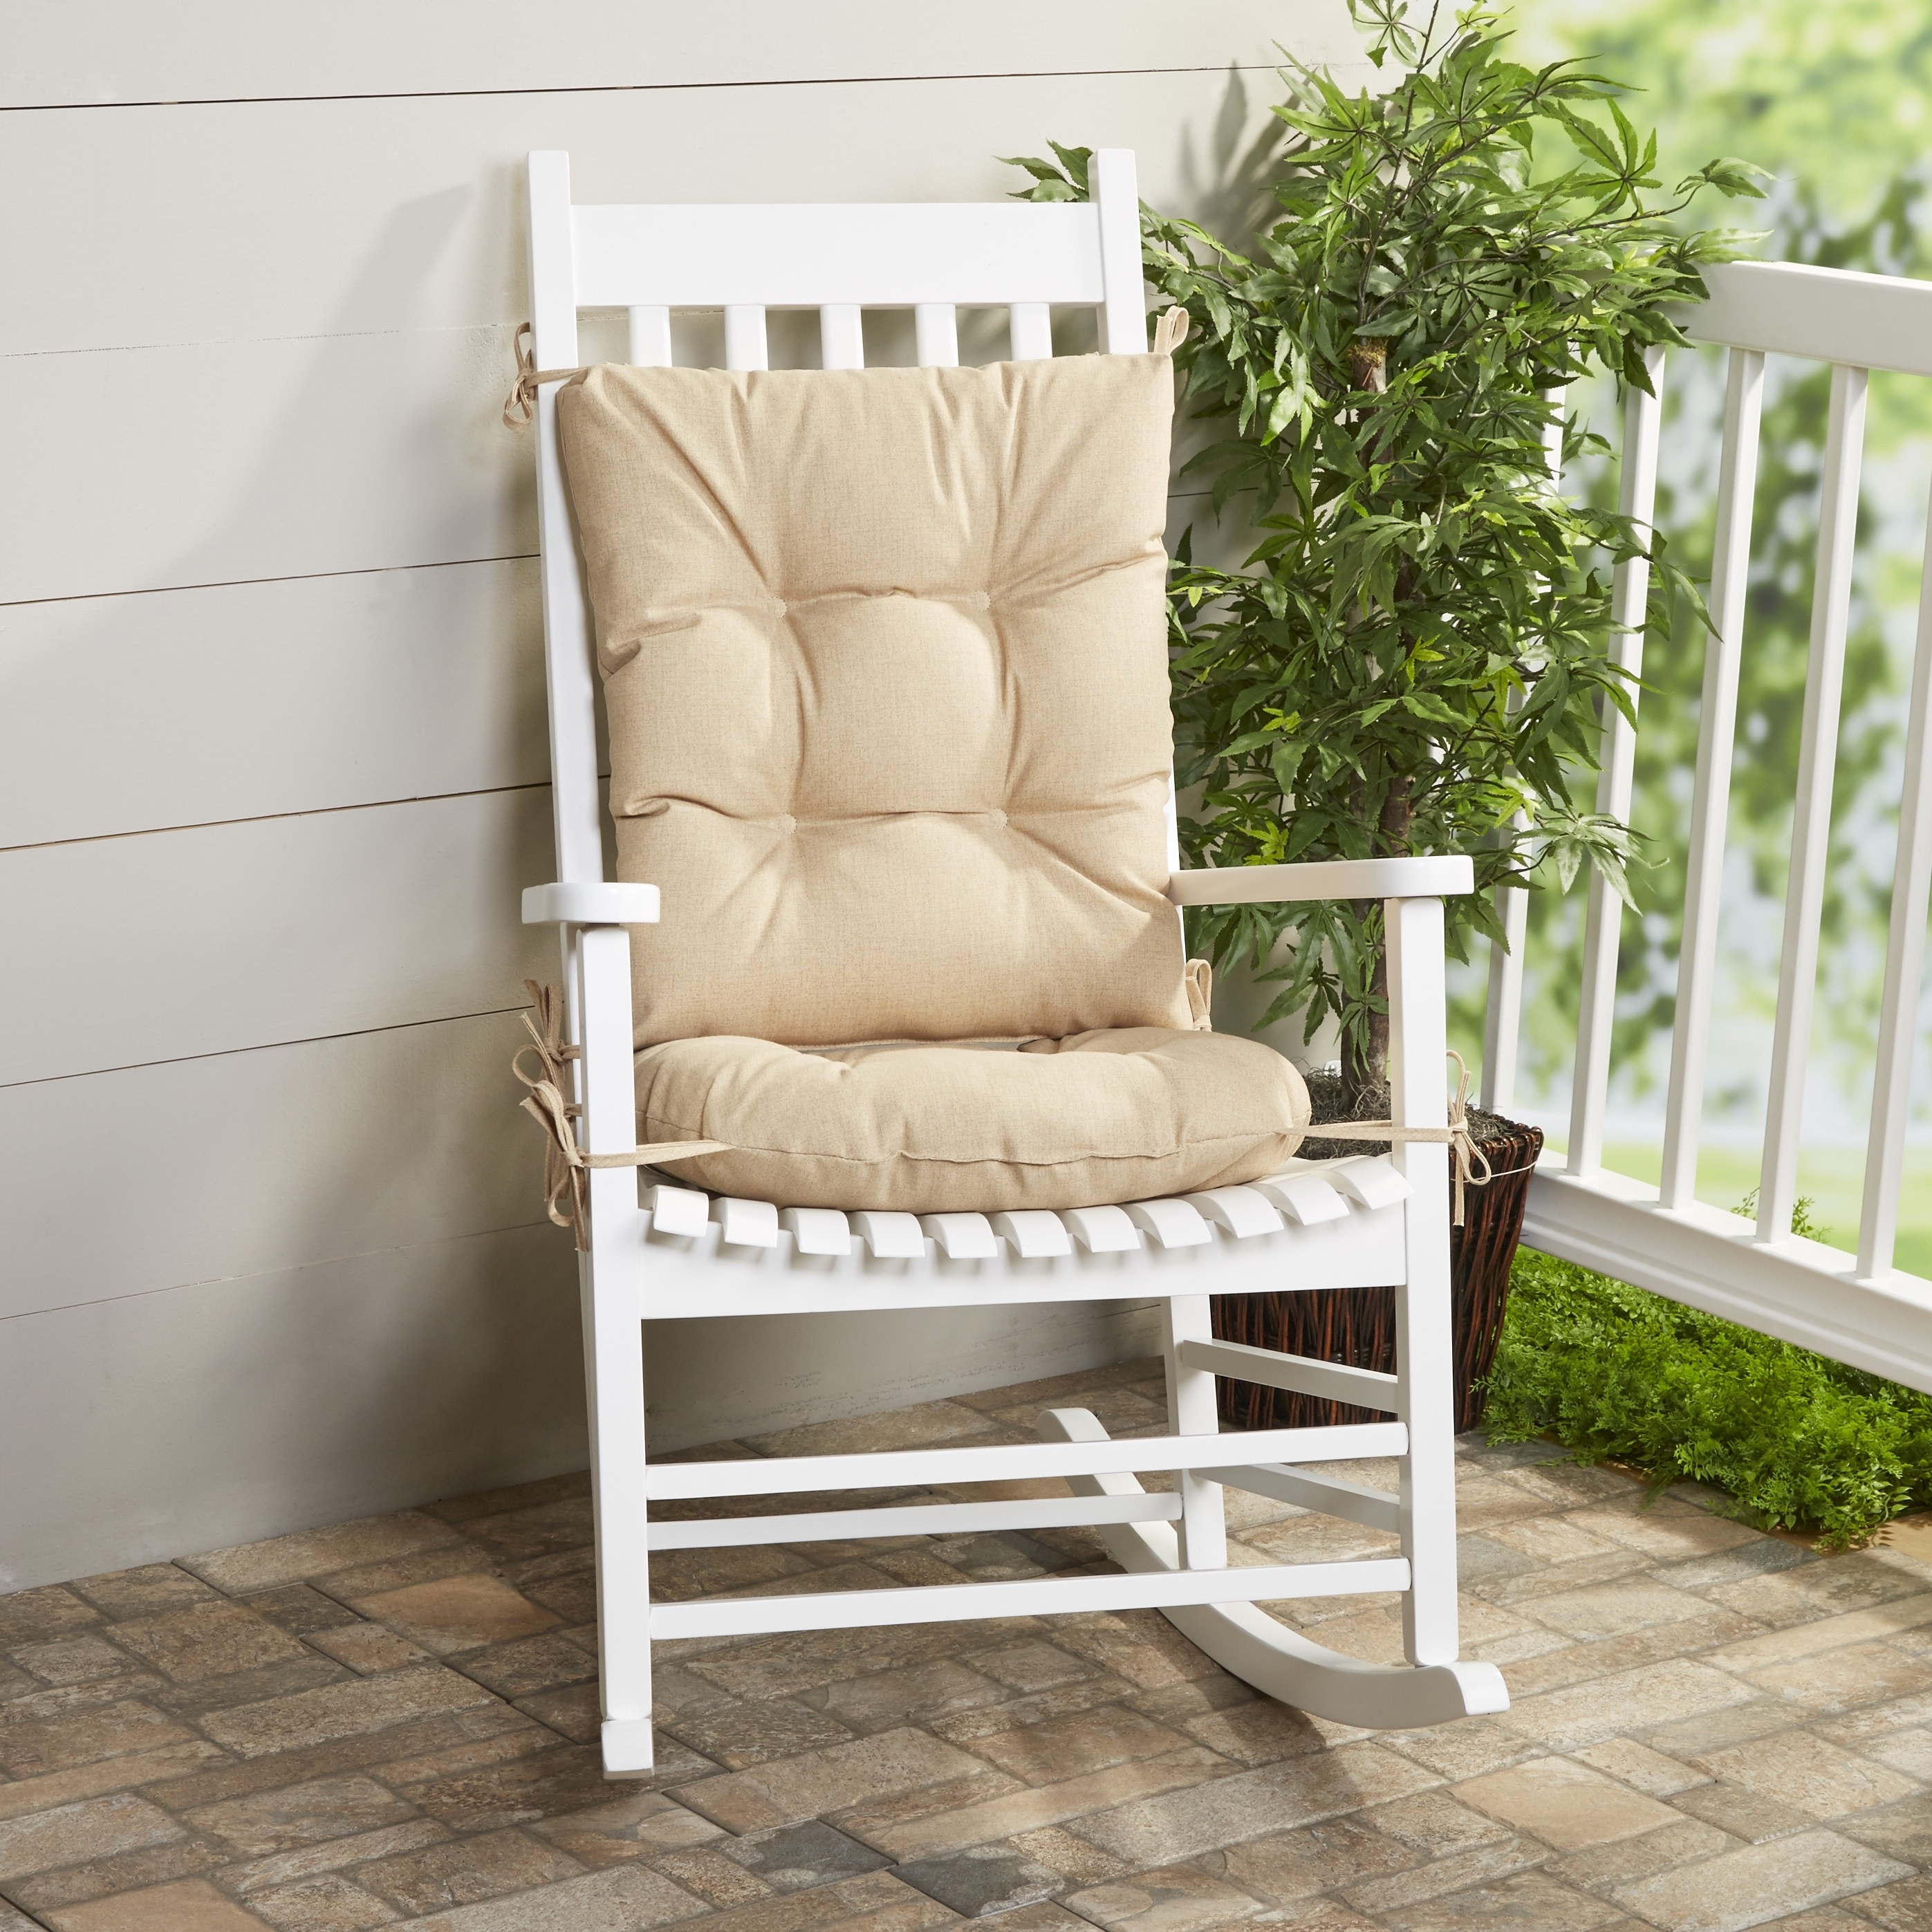 Rocking Chairs At Wayfair Regarding Preferred Furniture: White Wooden Wayfair Rocking Chair With Cushion For (View 15 of 20)